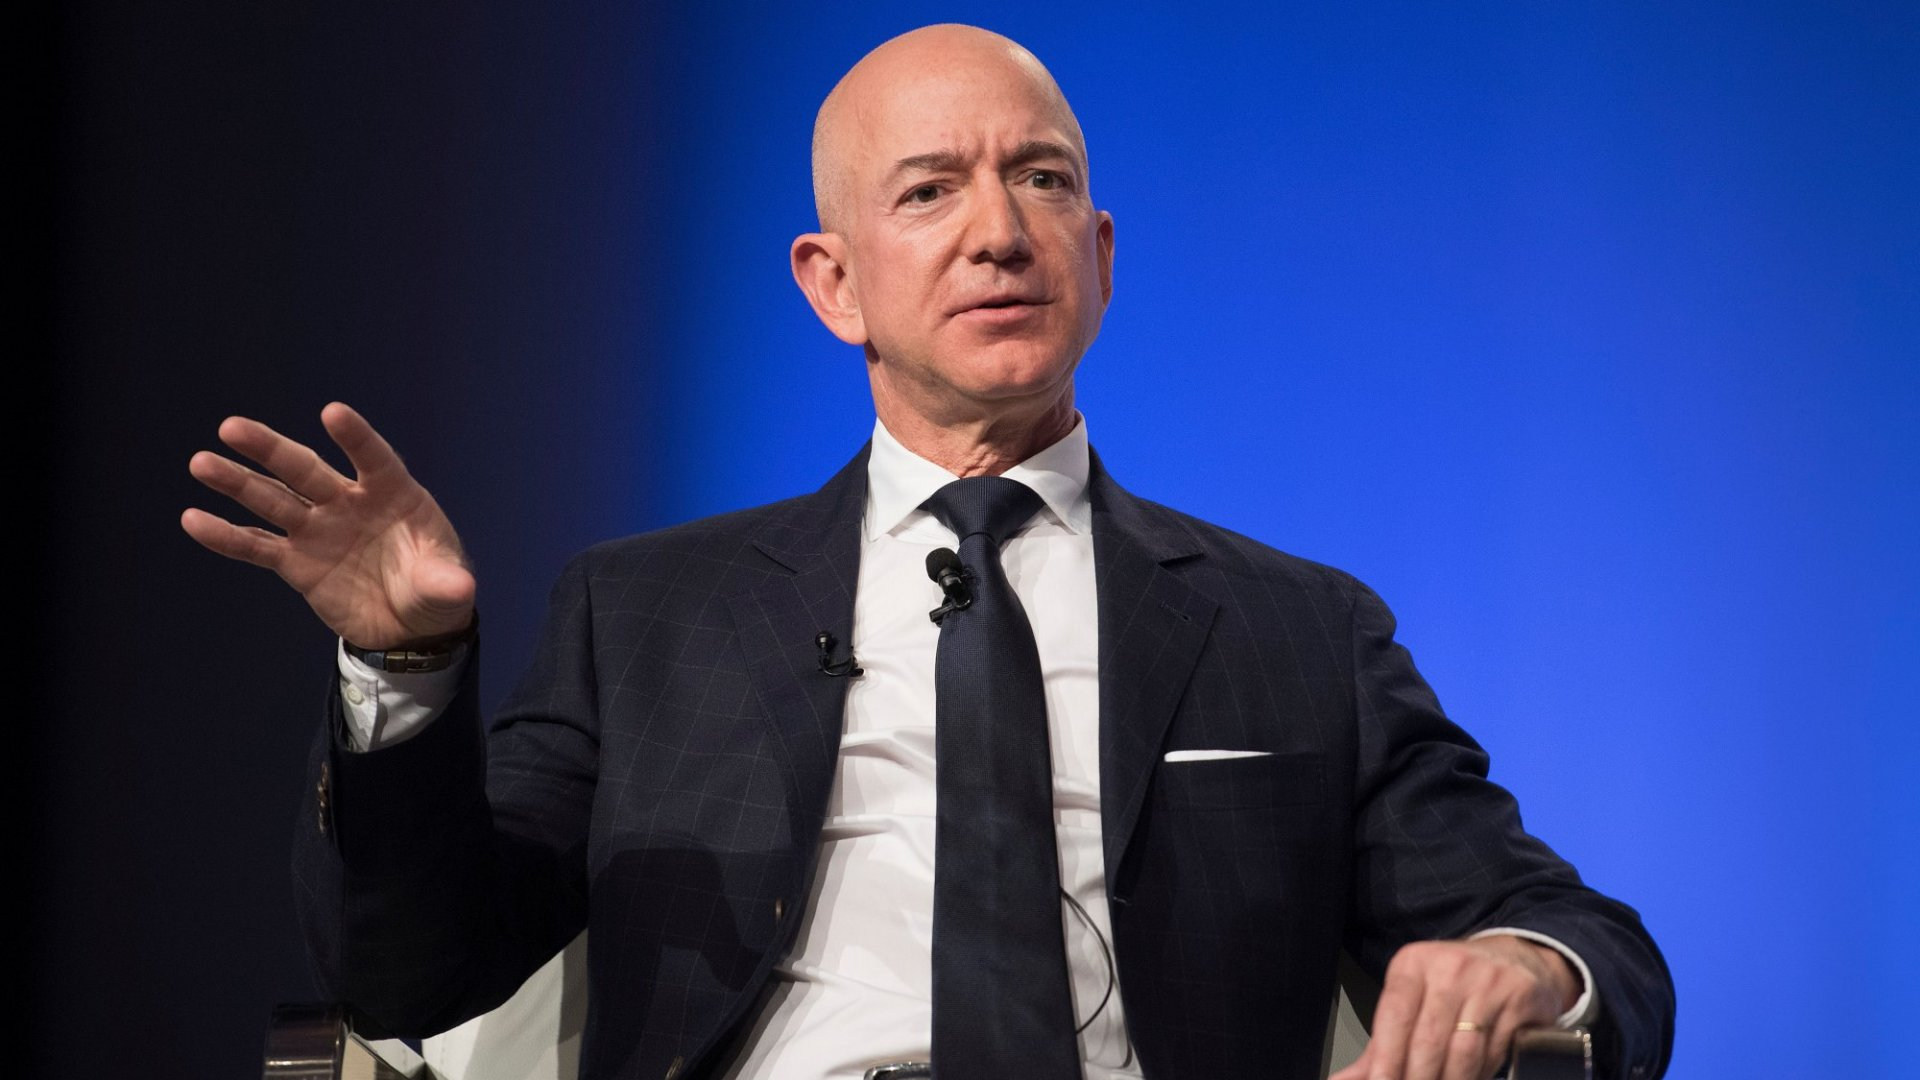 4,500 Amazon Employees Just Sent an Open Letter to Jeff Bezos Demanding the Company Get Serious About Climate Change